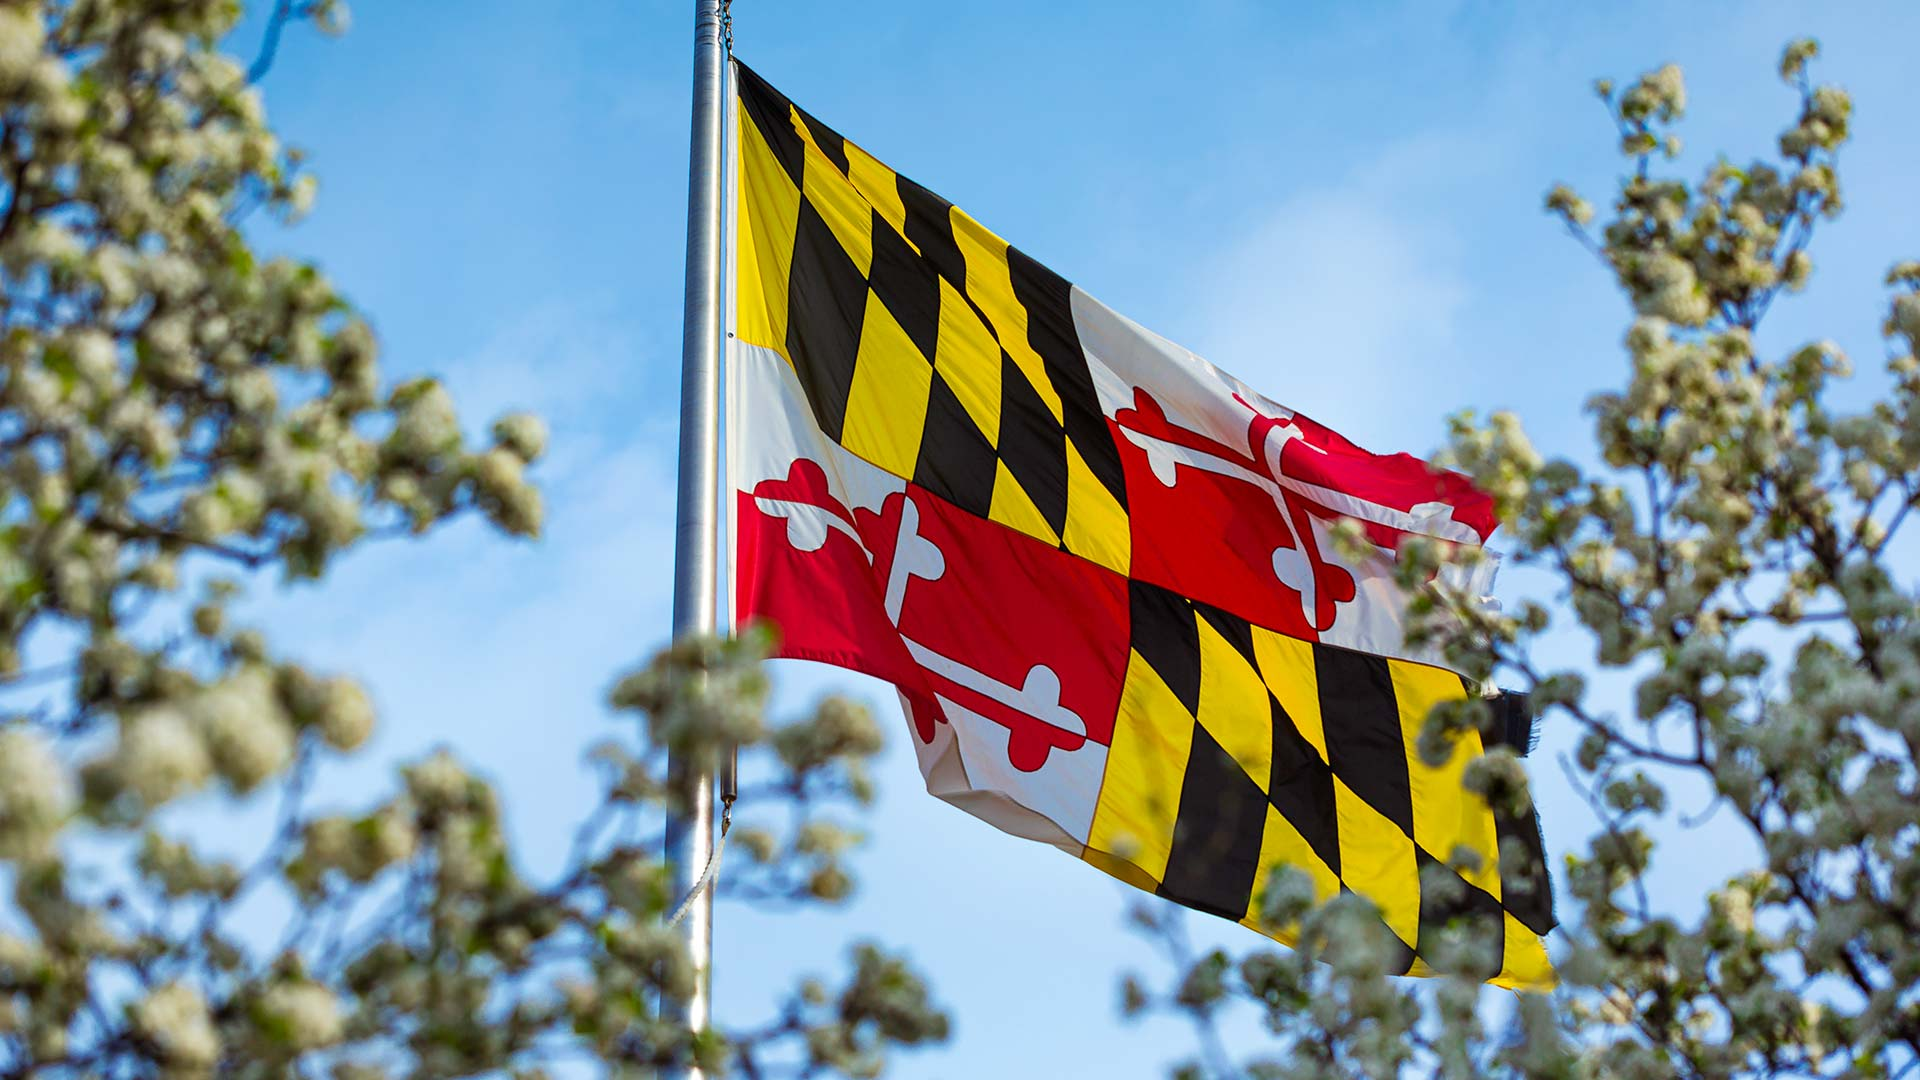 Maryland Flag on UMD's College Park Campus